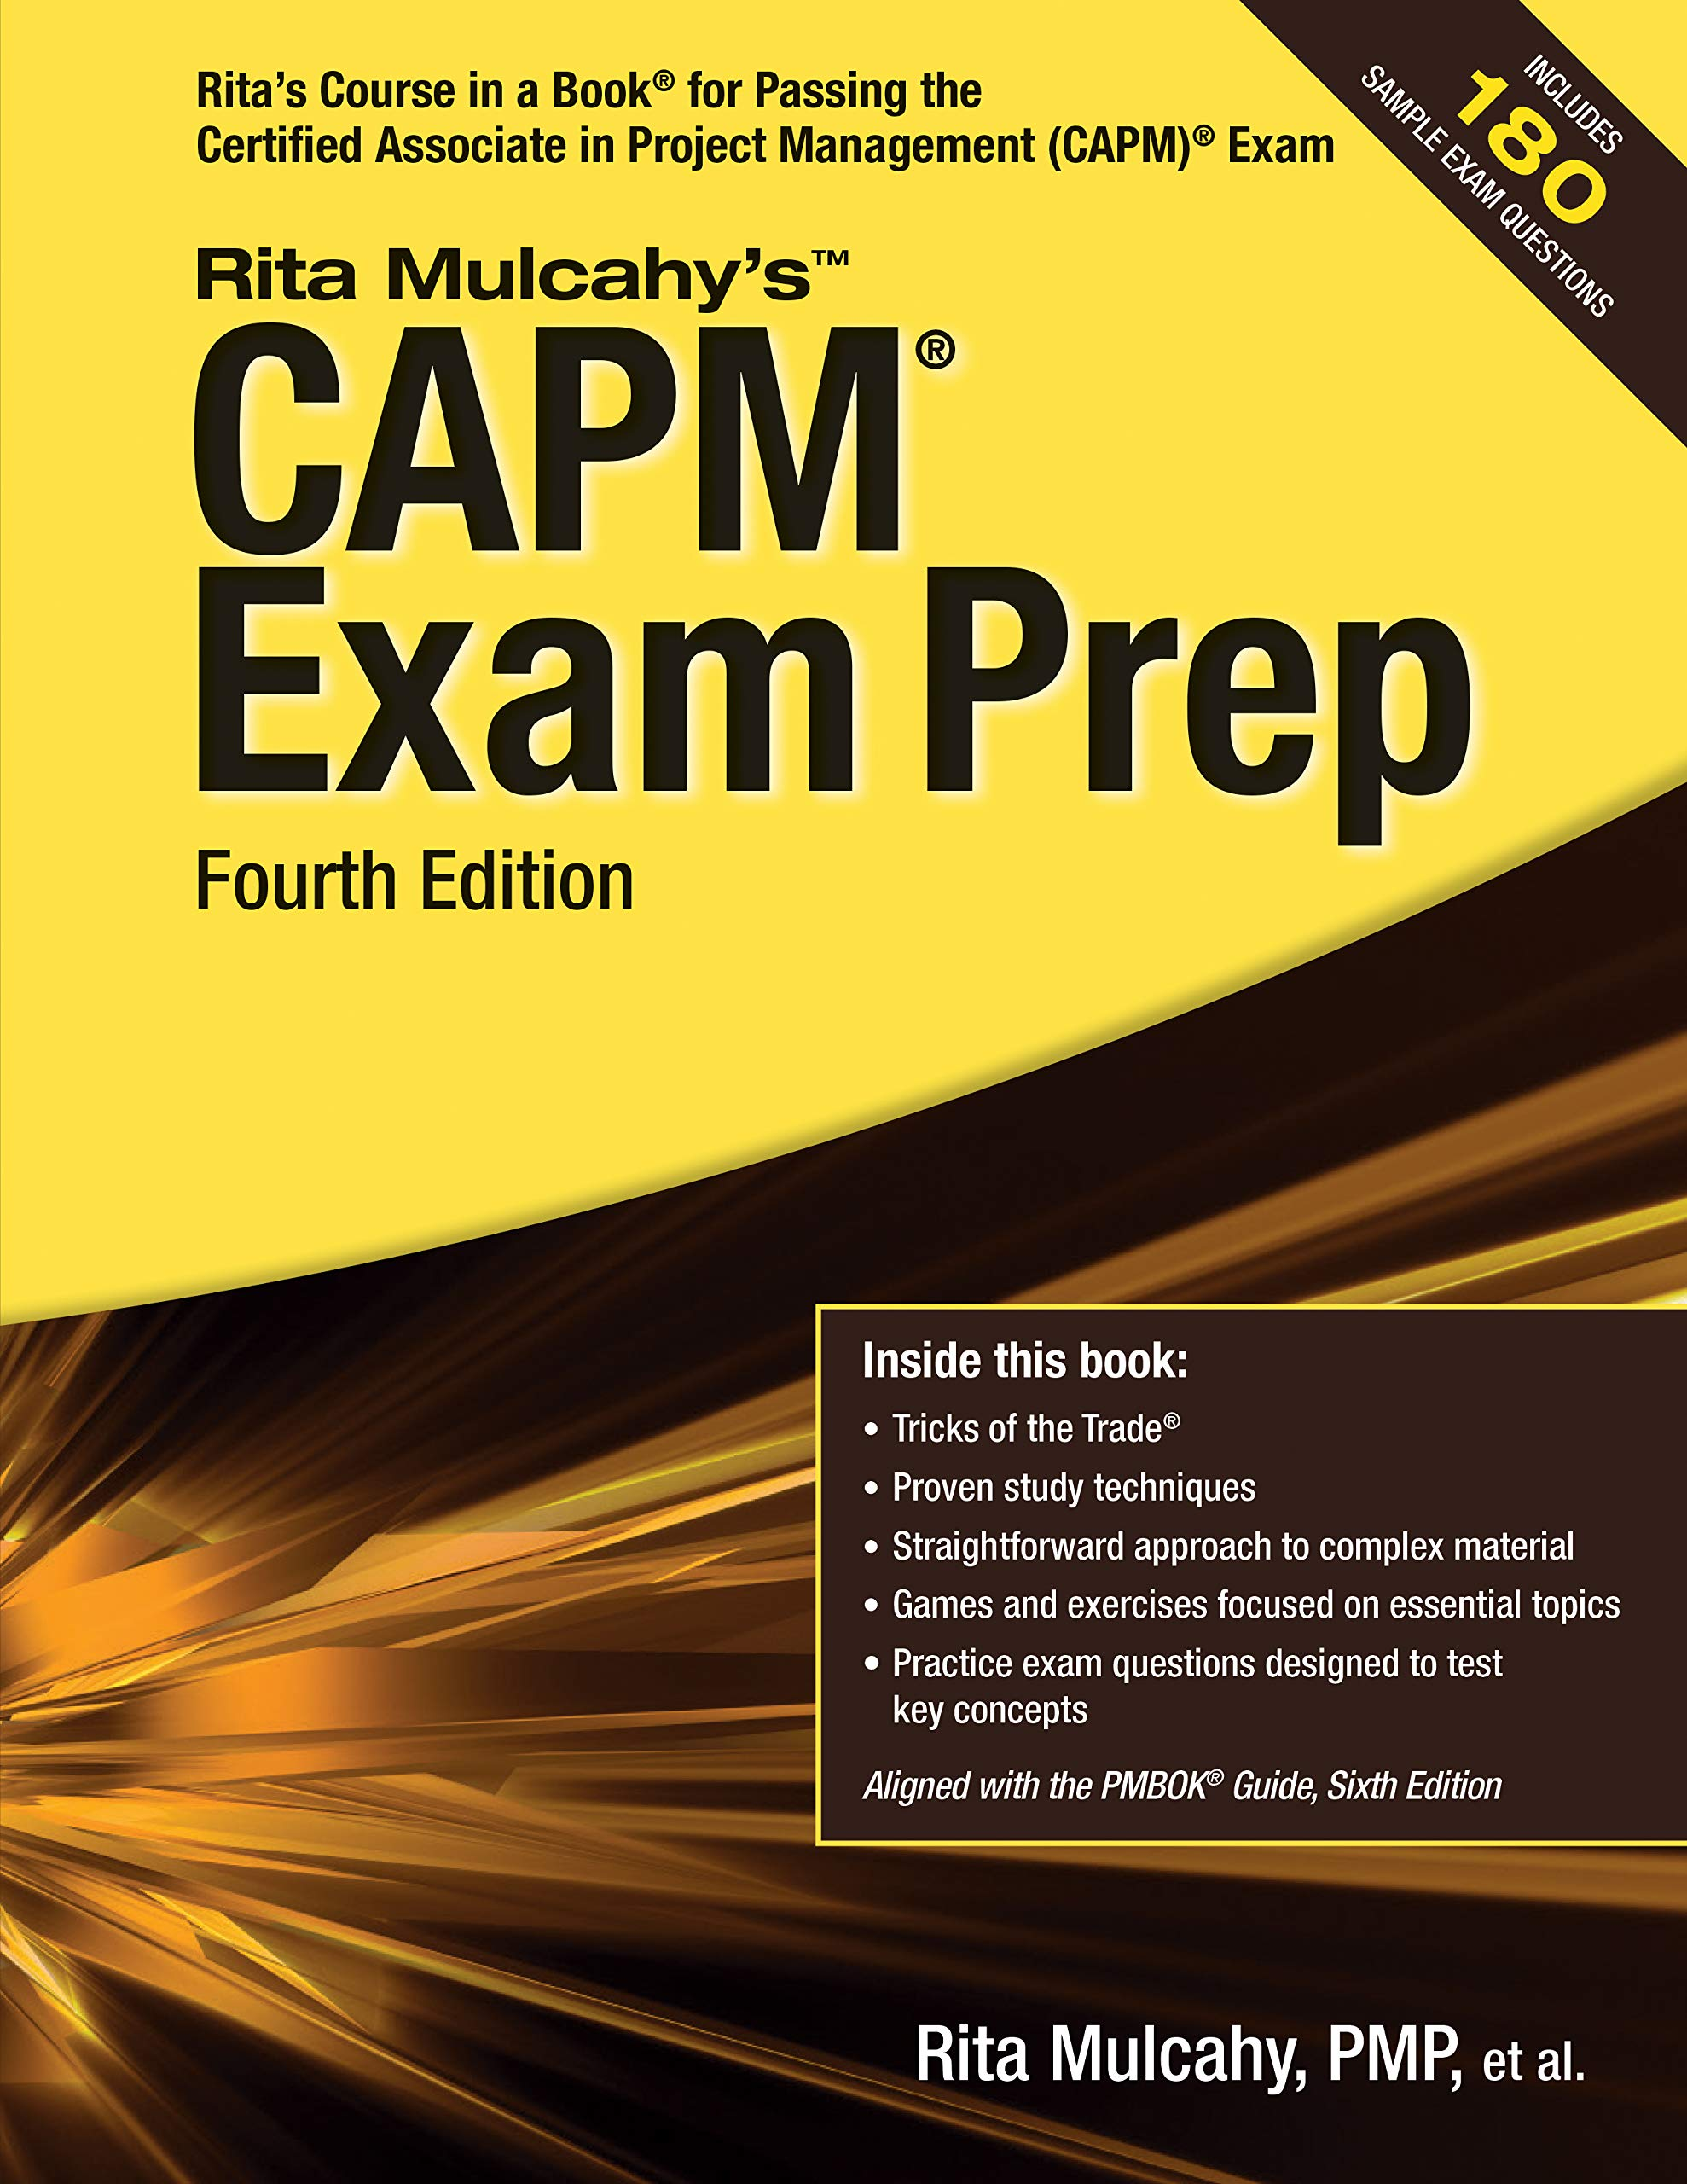 capm exam prep rita mulcahy pdf free download